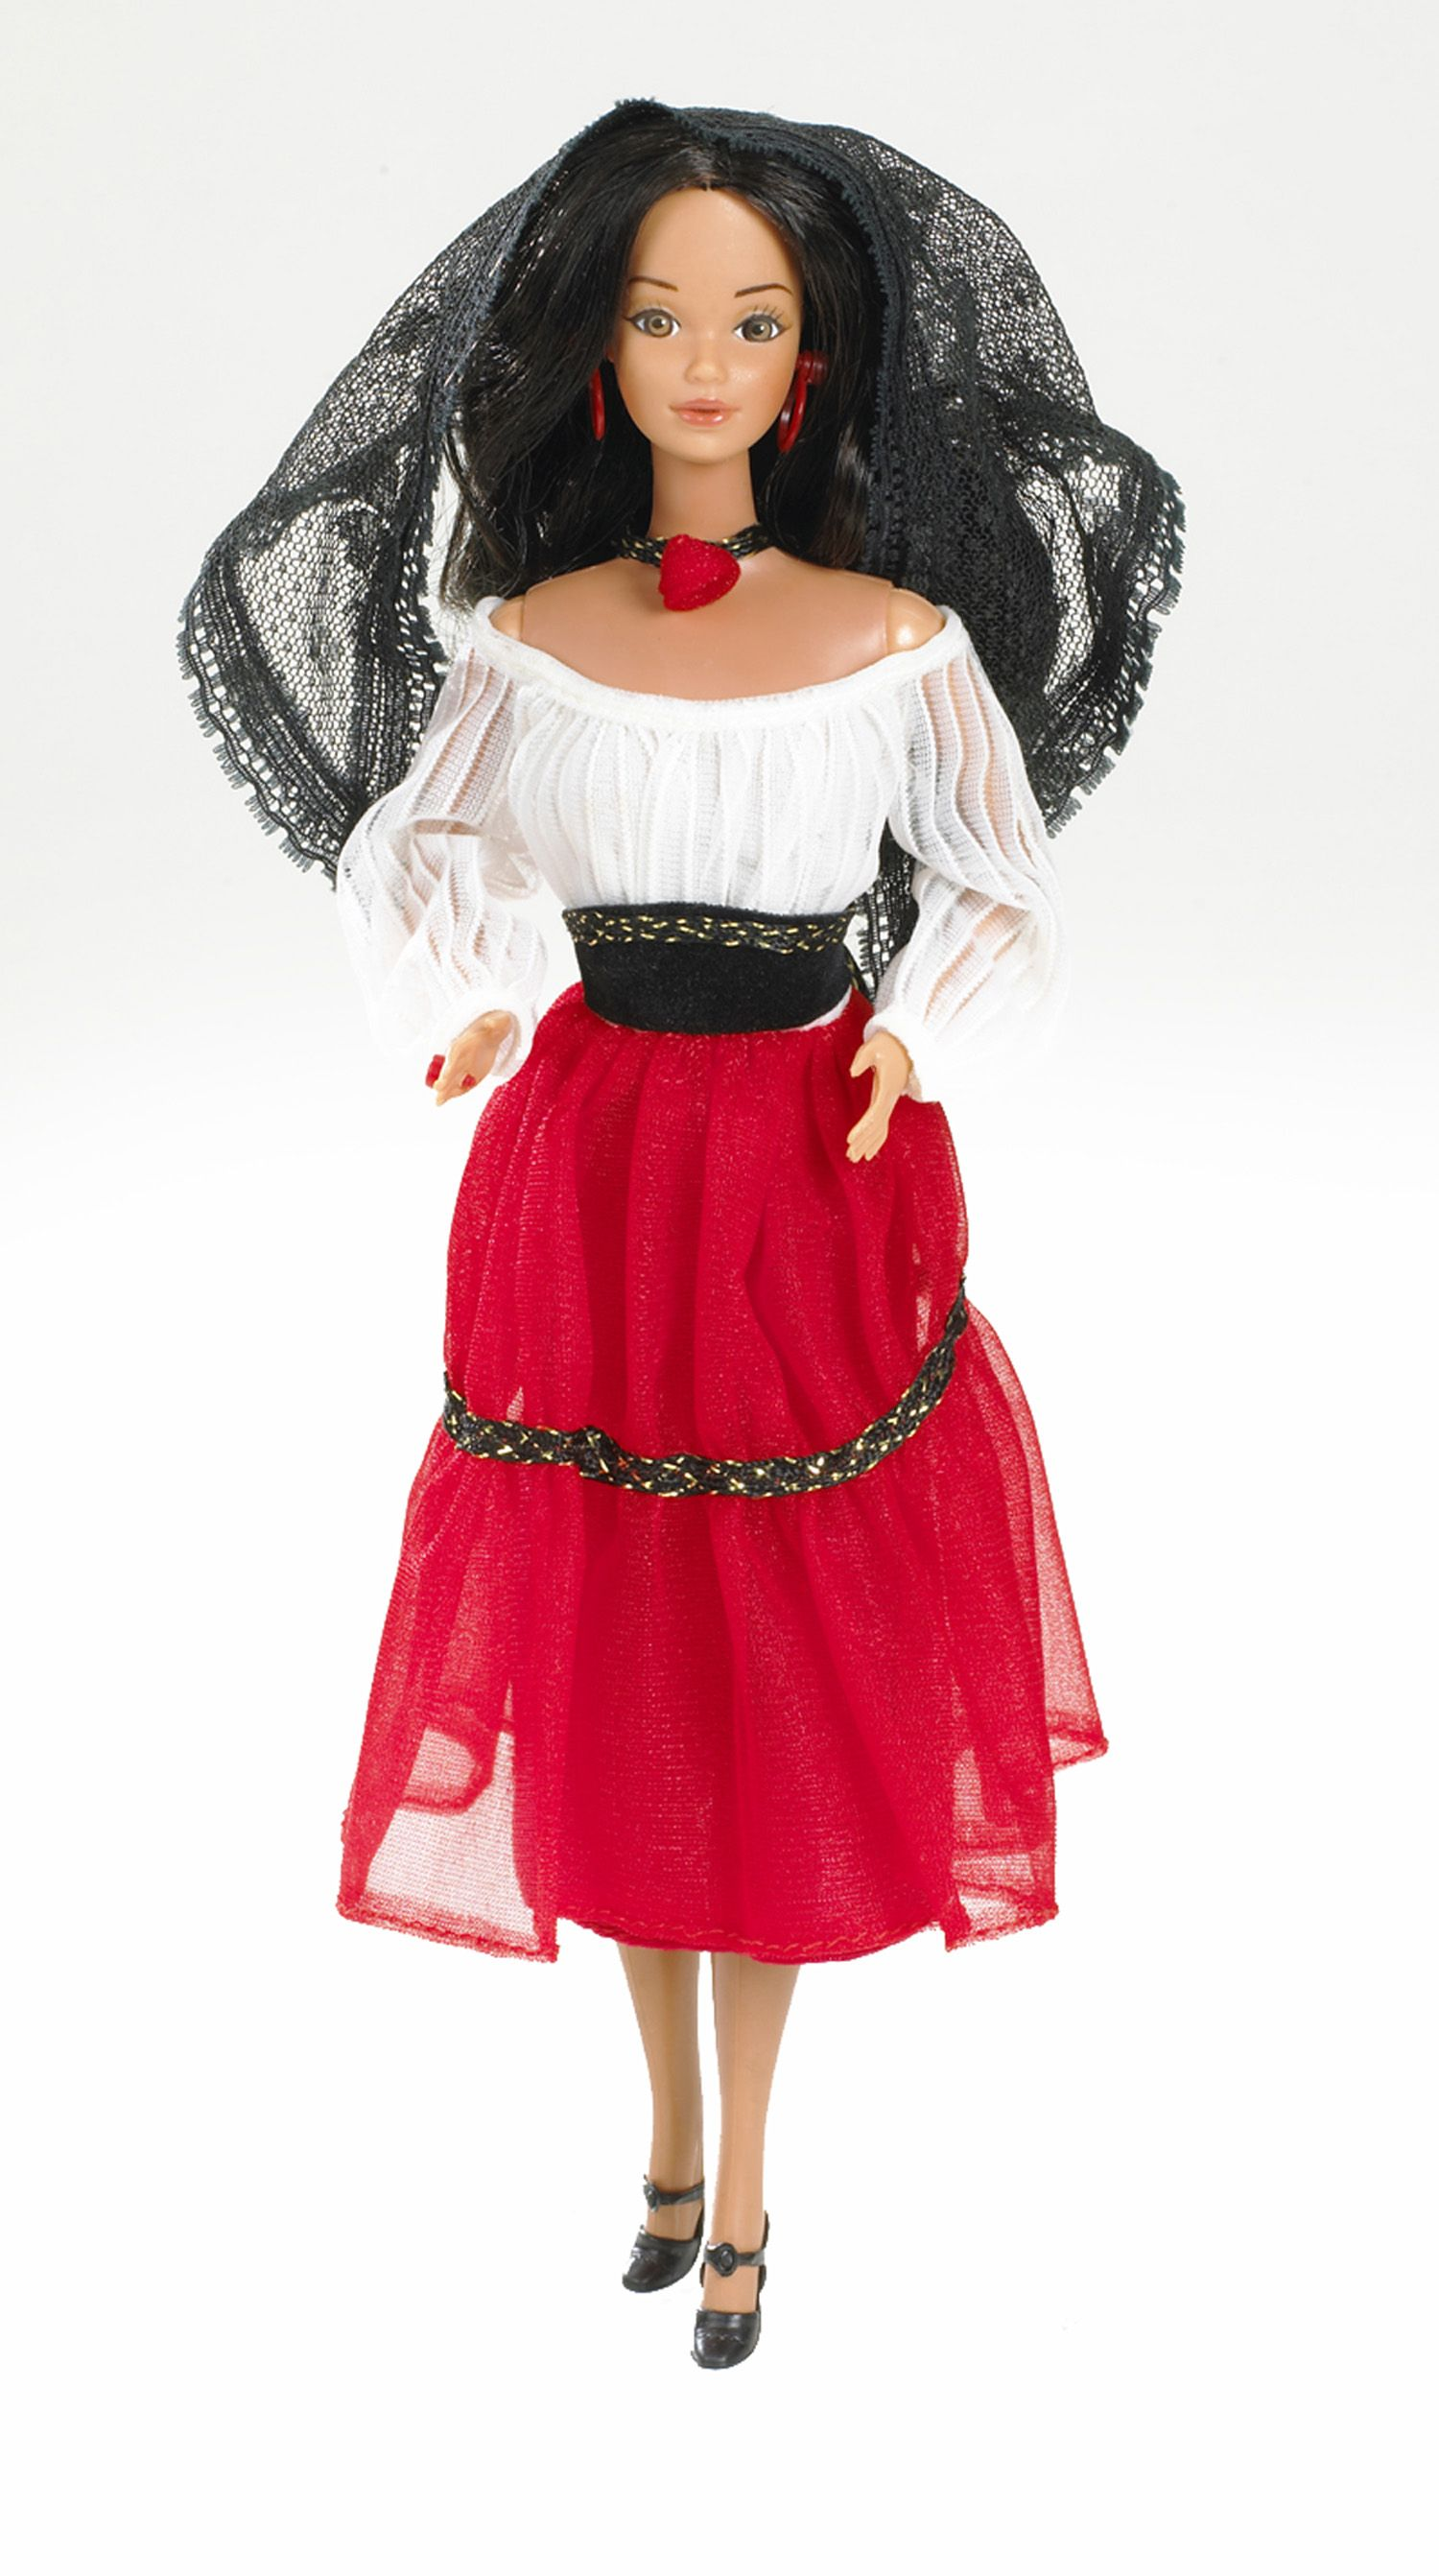 Barbie Mexican pictures